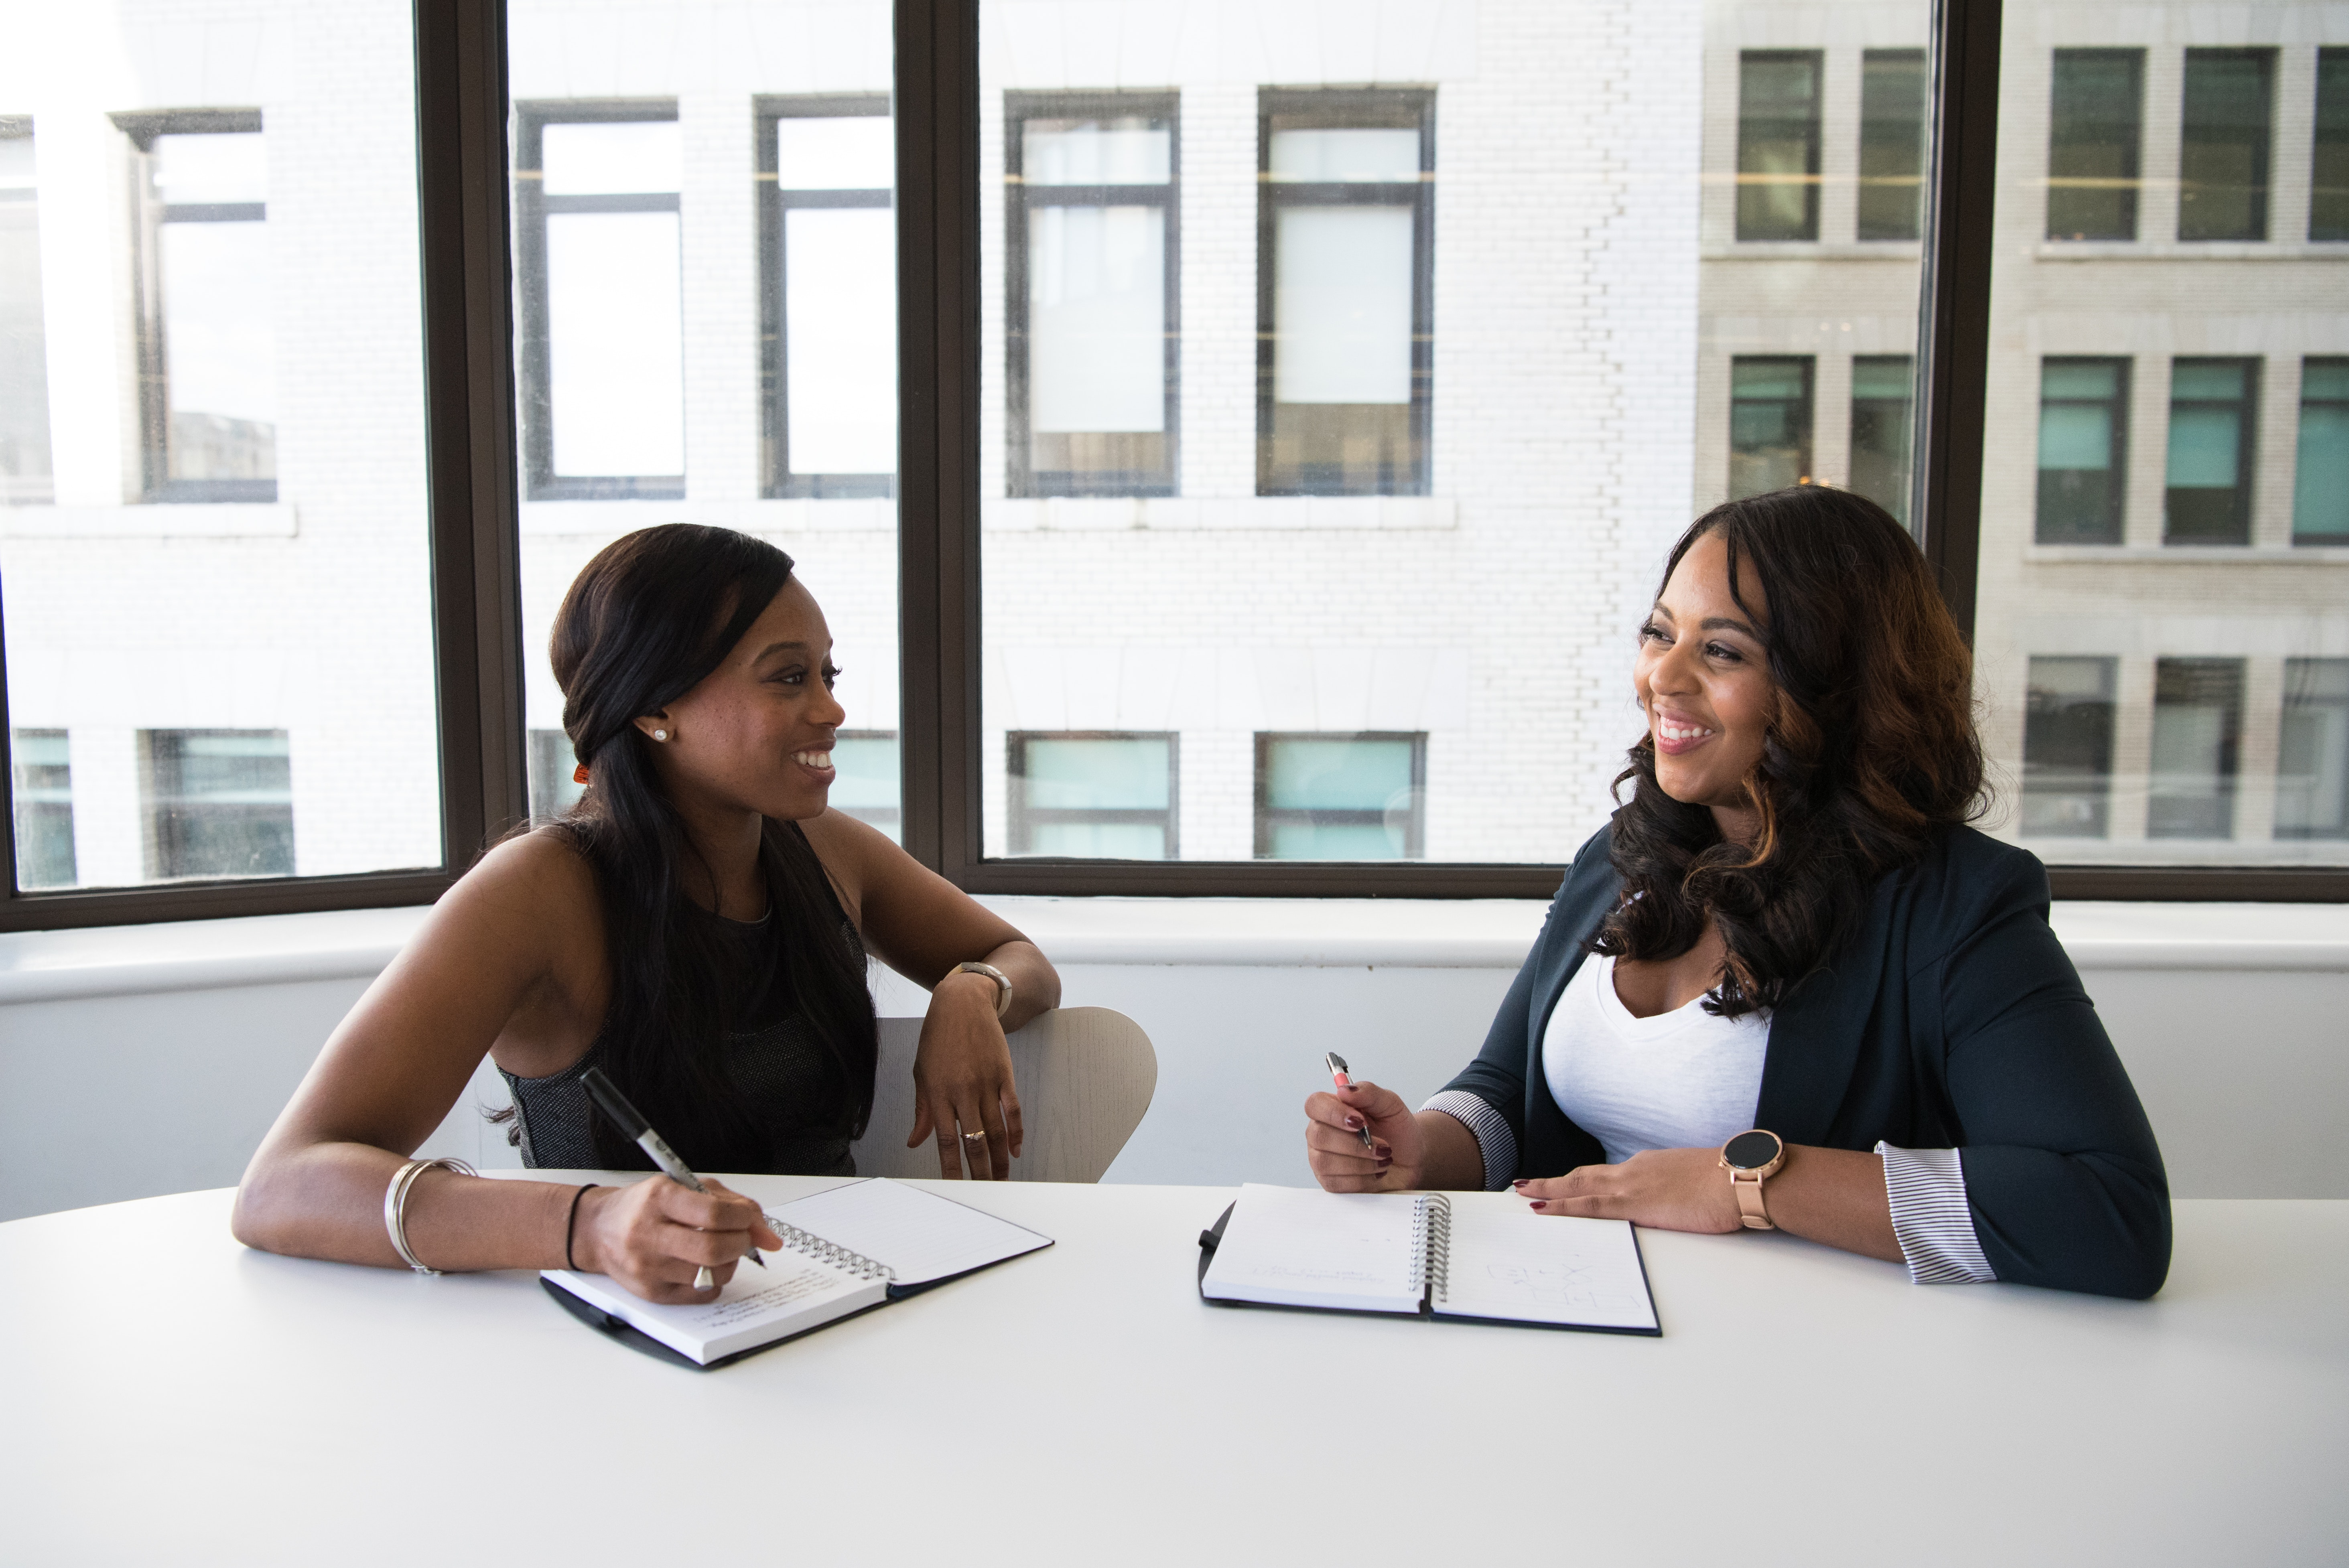 Two ladies speaking to each other in an office